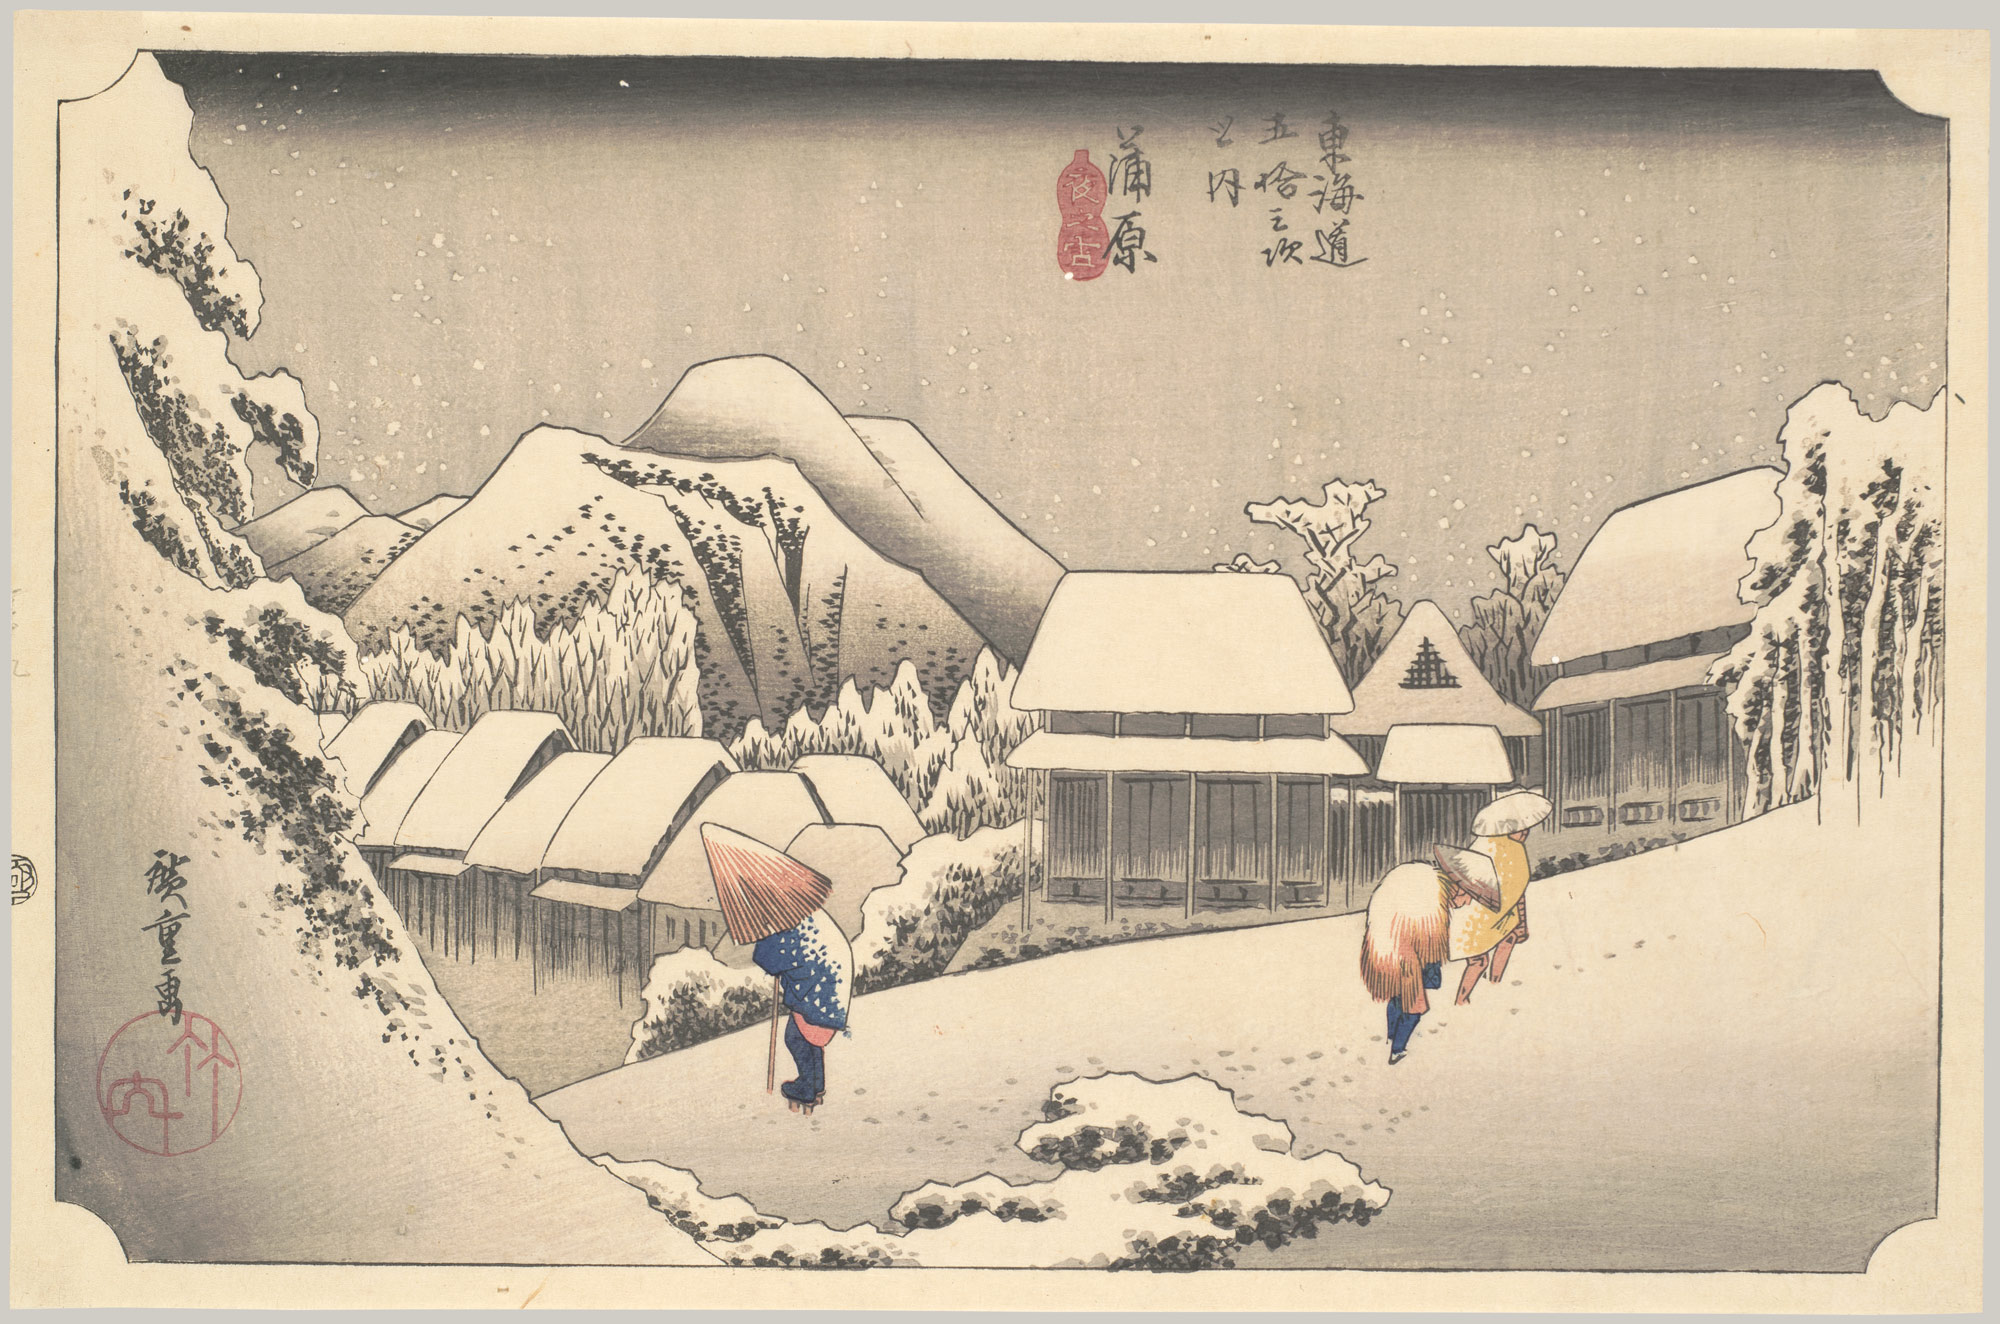 Woodblock Prints in the Ukiyo-e Style | Essay | Heilbrunn